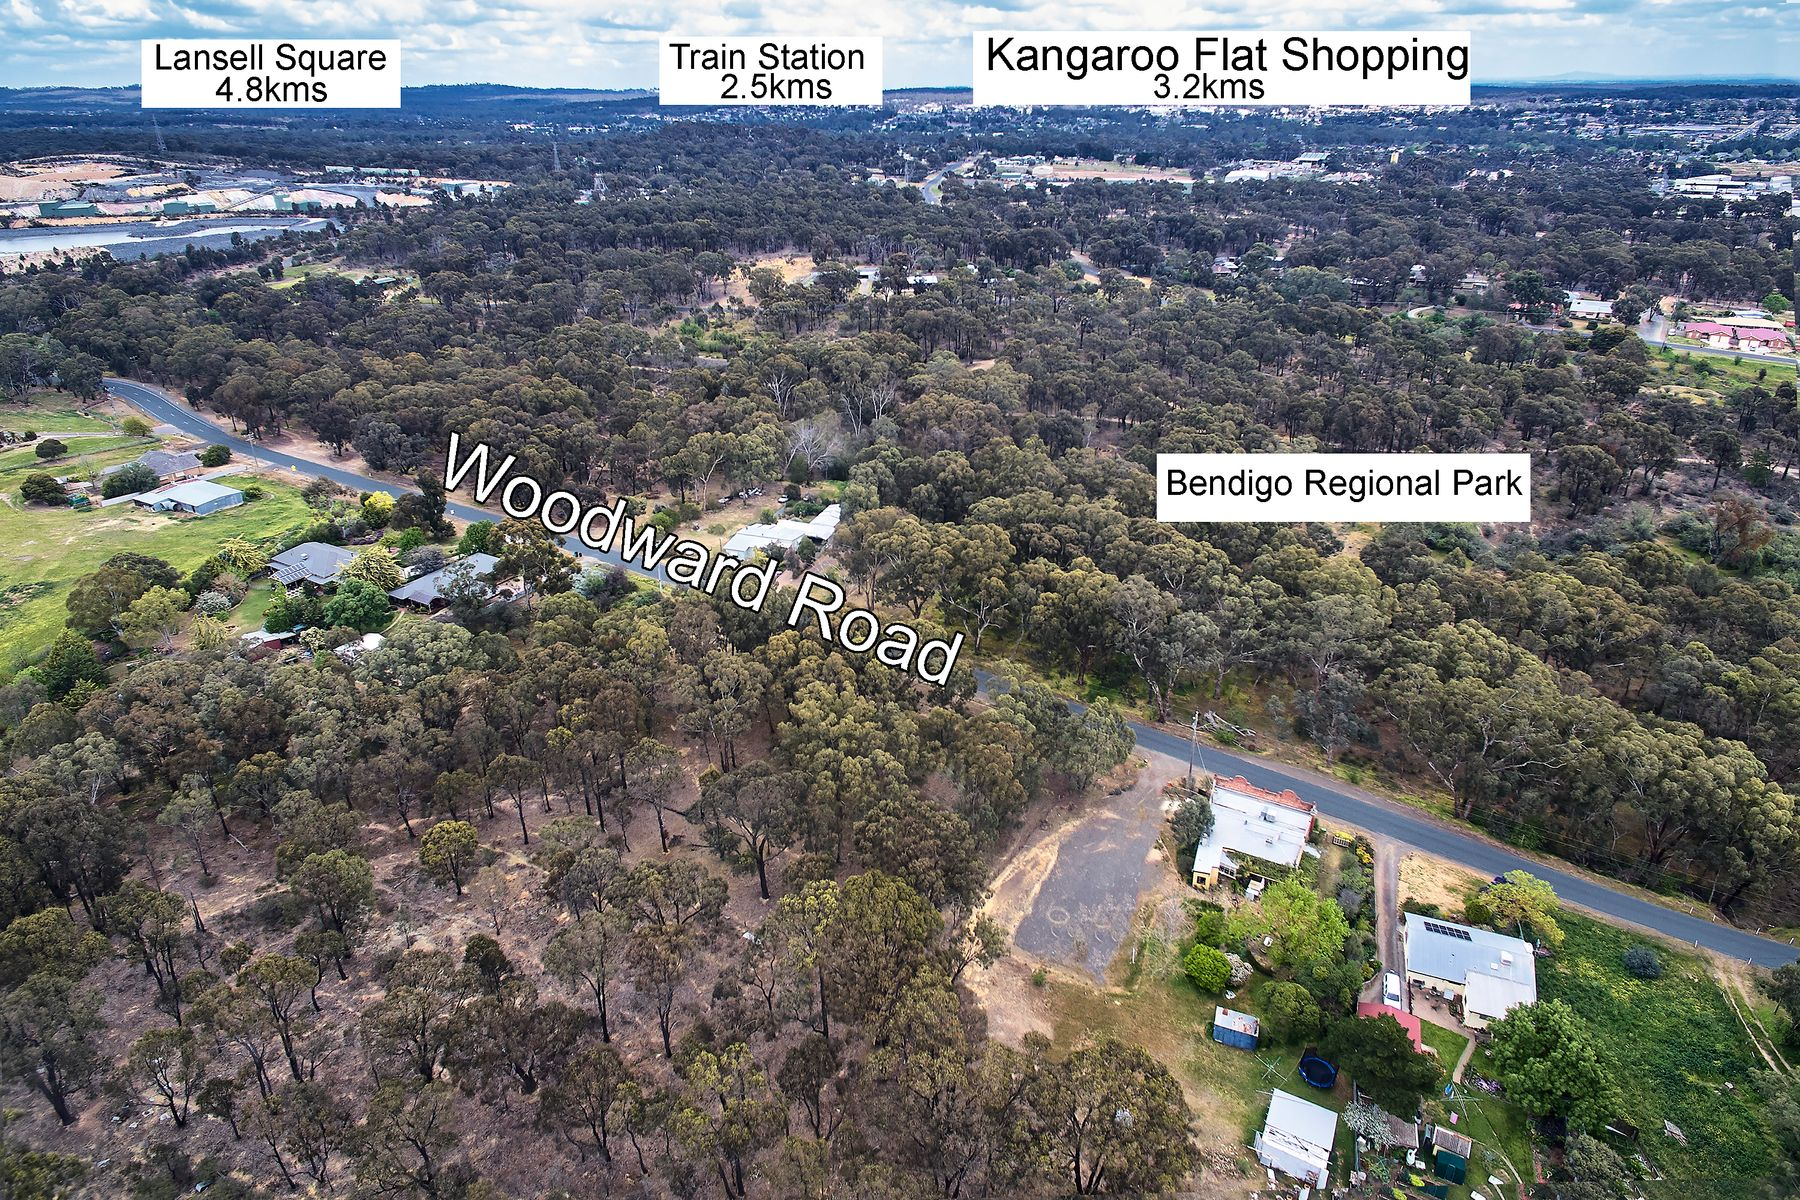 Lot 15/78 Woodward Road, Golden Gully, VIC 3555